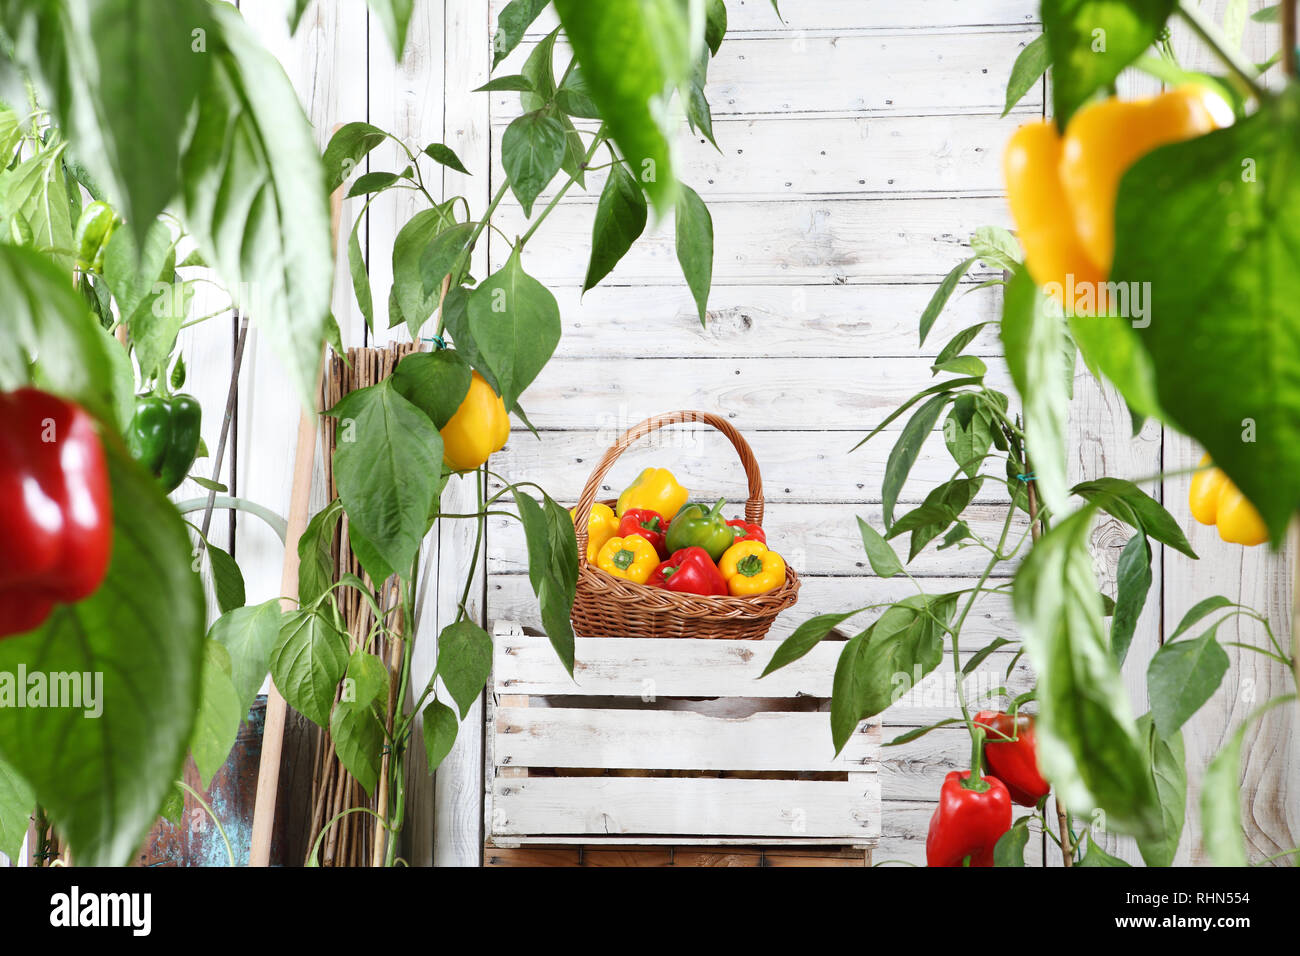 Wicker Basket Full Of Sweet Colored Peppers On The Wooden Box Crate